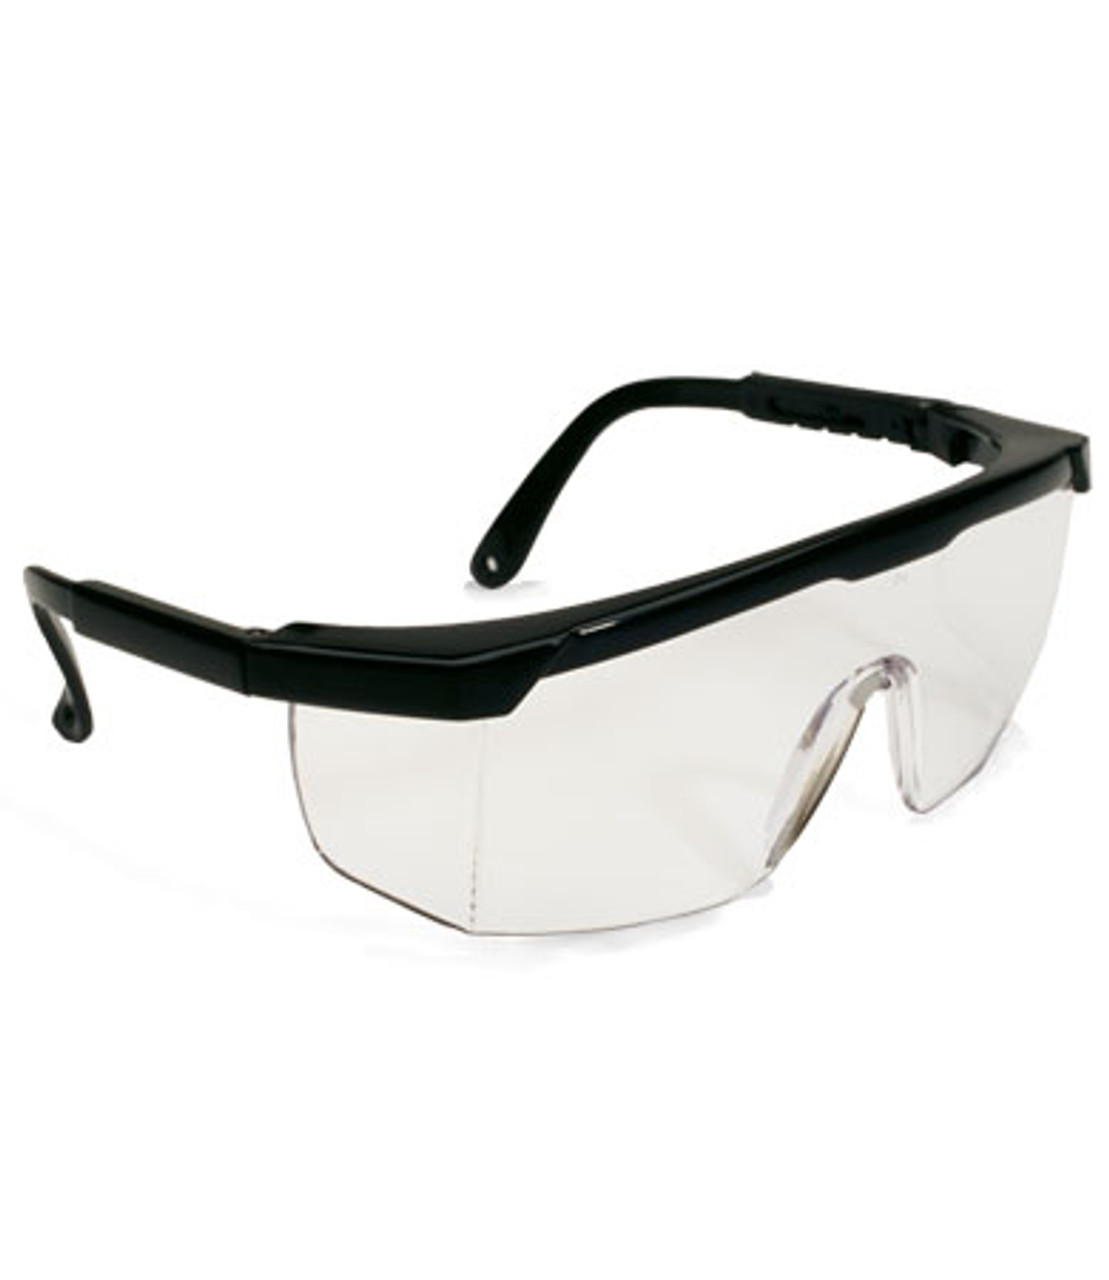 Conditional, Clear Non-coated Lens, Black Adjustable Temples, Built-in